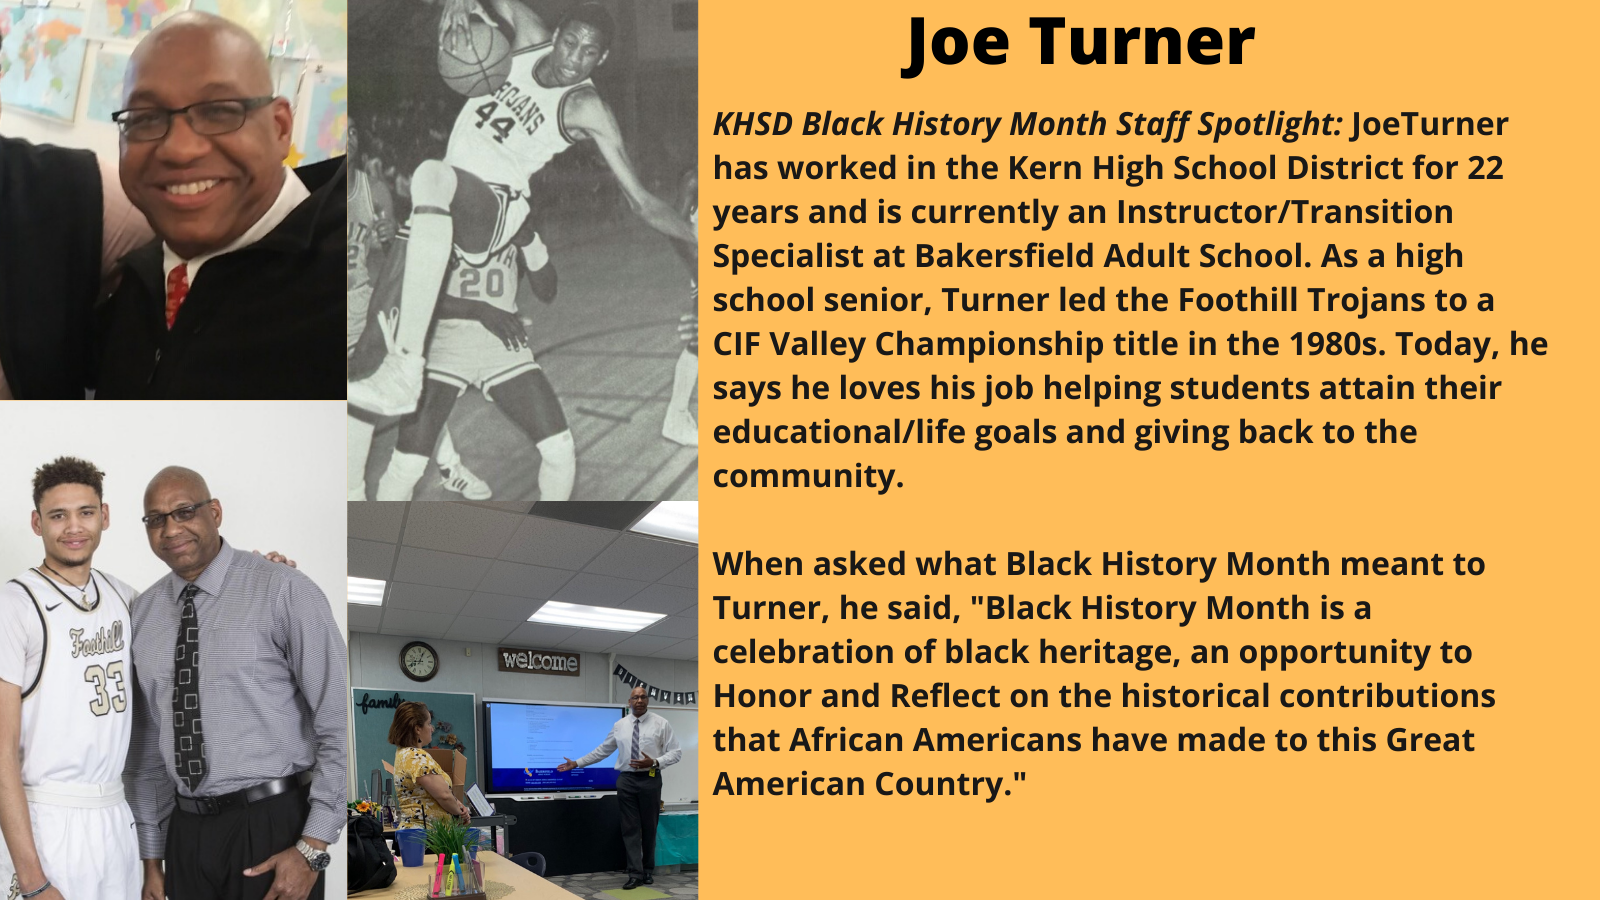 KHSD Black History Month Staff Spotlight: JoeTurner has worked in the Kern High School District for 22 years and is currently an Instructor/Transition Specialist at Bakersfield Adult School. As a high school senior, Turner led the Foothill Trojans to a CIF Valley Championship title in the 1980s. Today, he says he loves his job helping students attain their educational/life goals and giving back to the community. When asked what Black History Month meant to Turner, he said, 'Black History Month is a celebration of black heritage, an opportunity to Honor and Reflect on the historical contributions that African Americans have made to this Great American Country.'